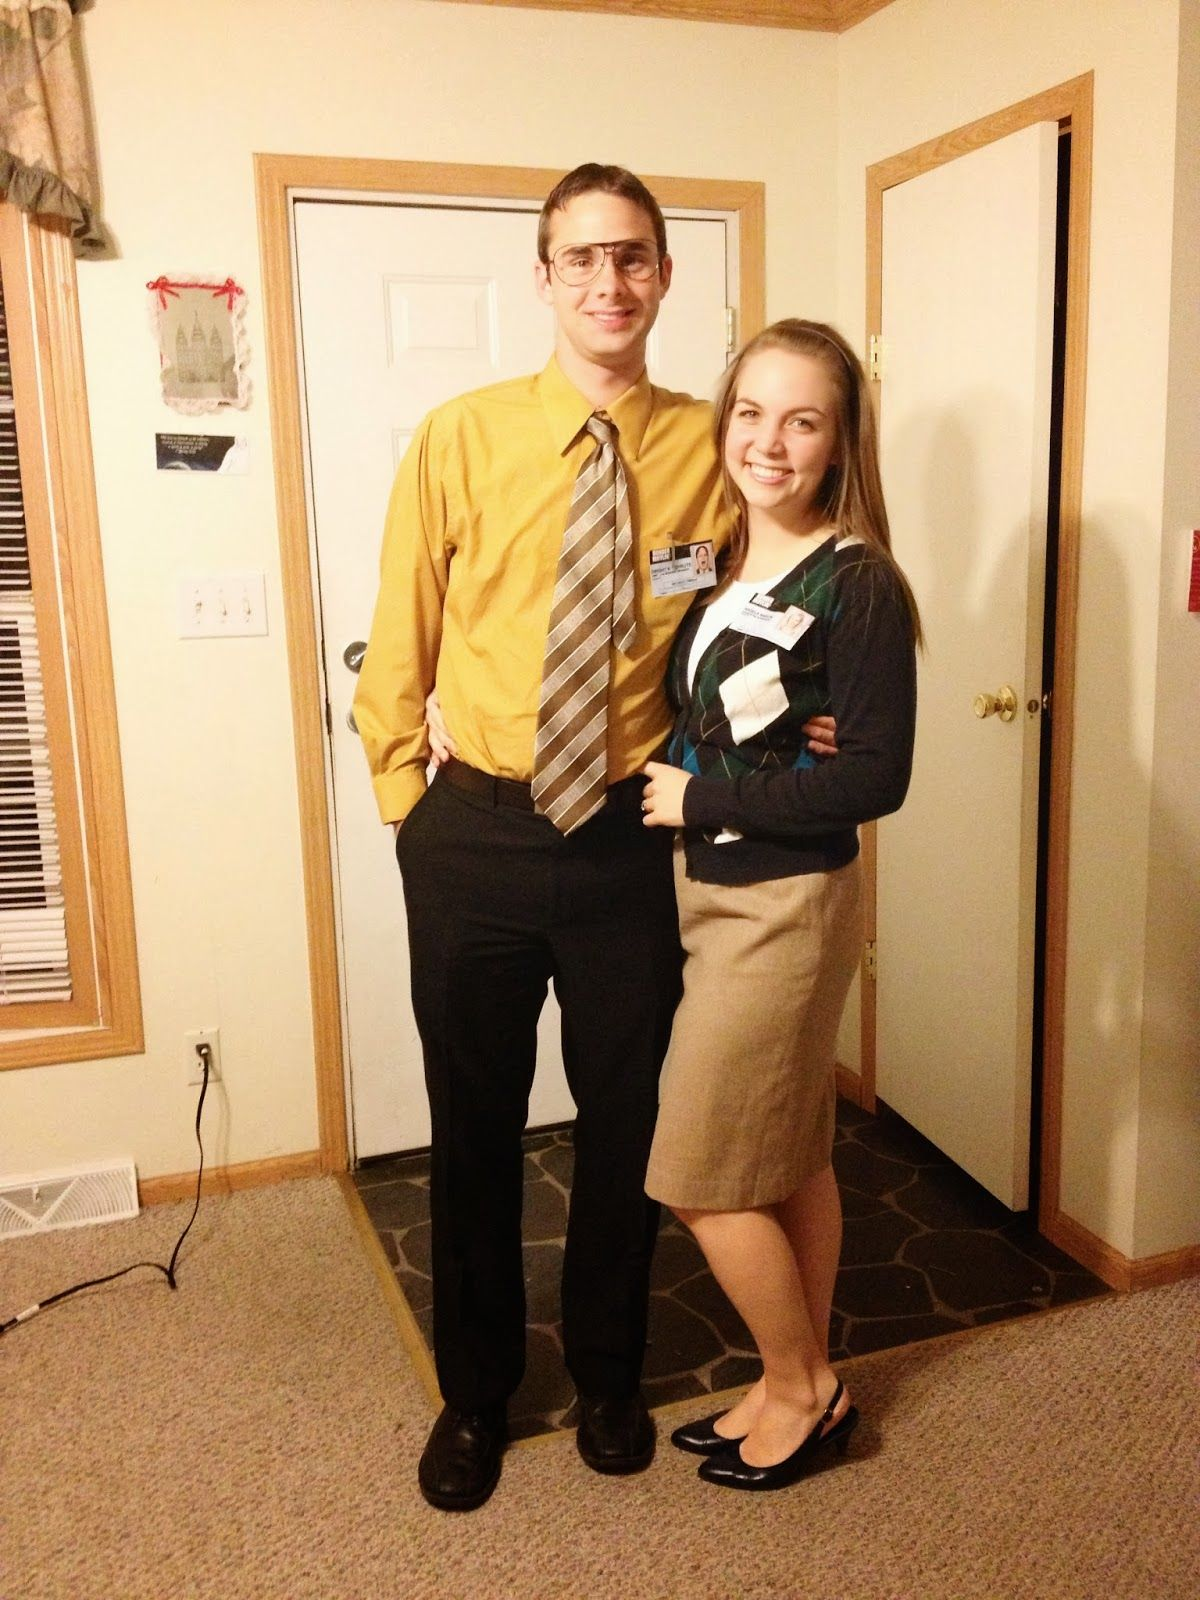 165e226c5de angela and dwight costume - Google Search